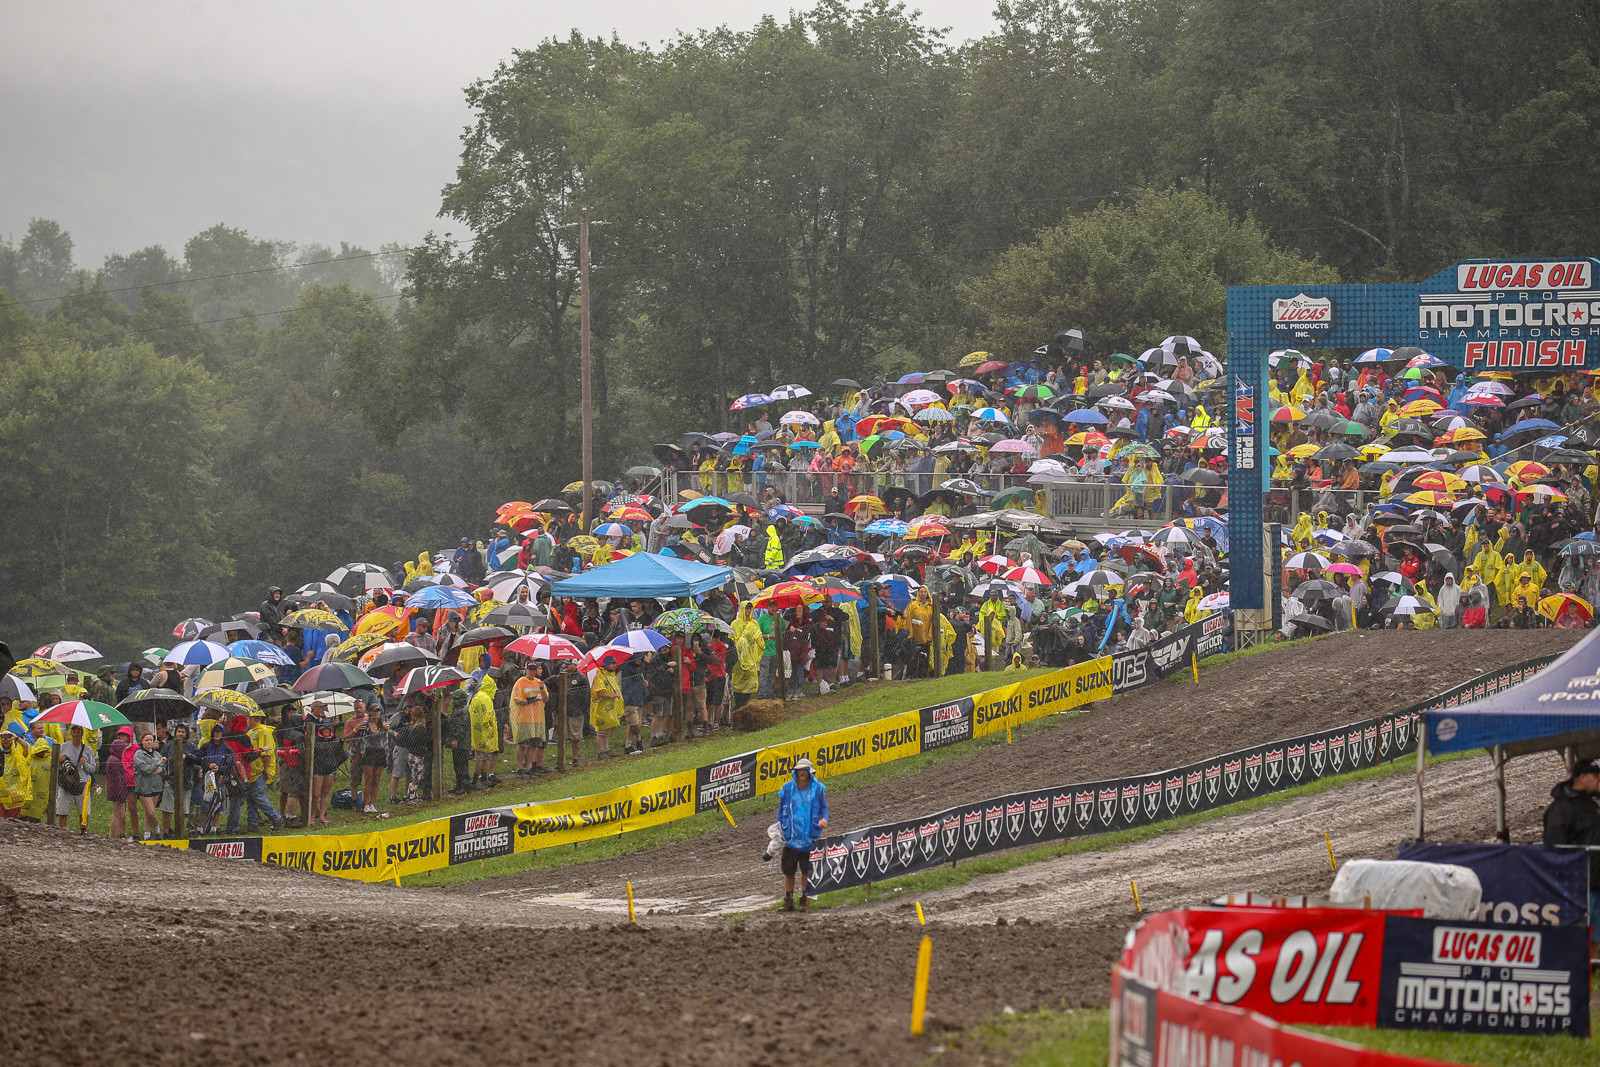 Before we get started, we have to give full props to the Unadilla crowd, who didn't get scared off by the rain.